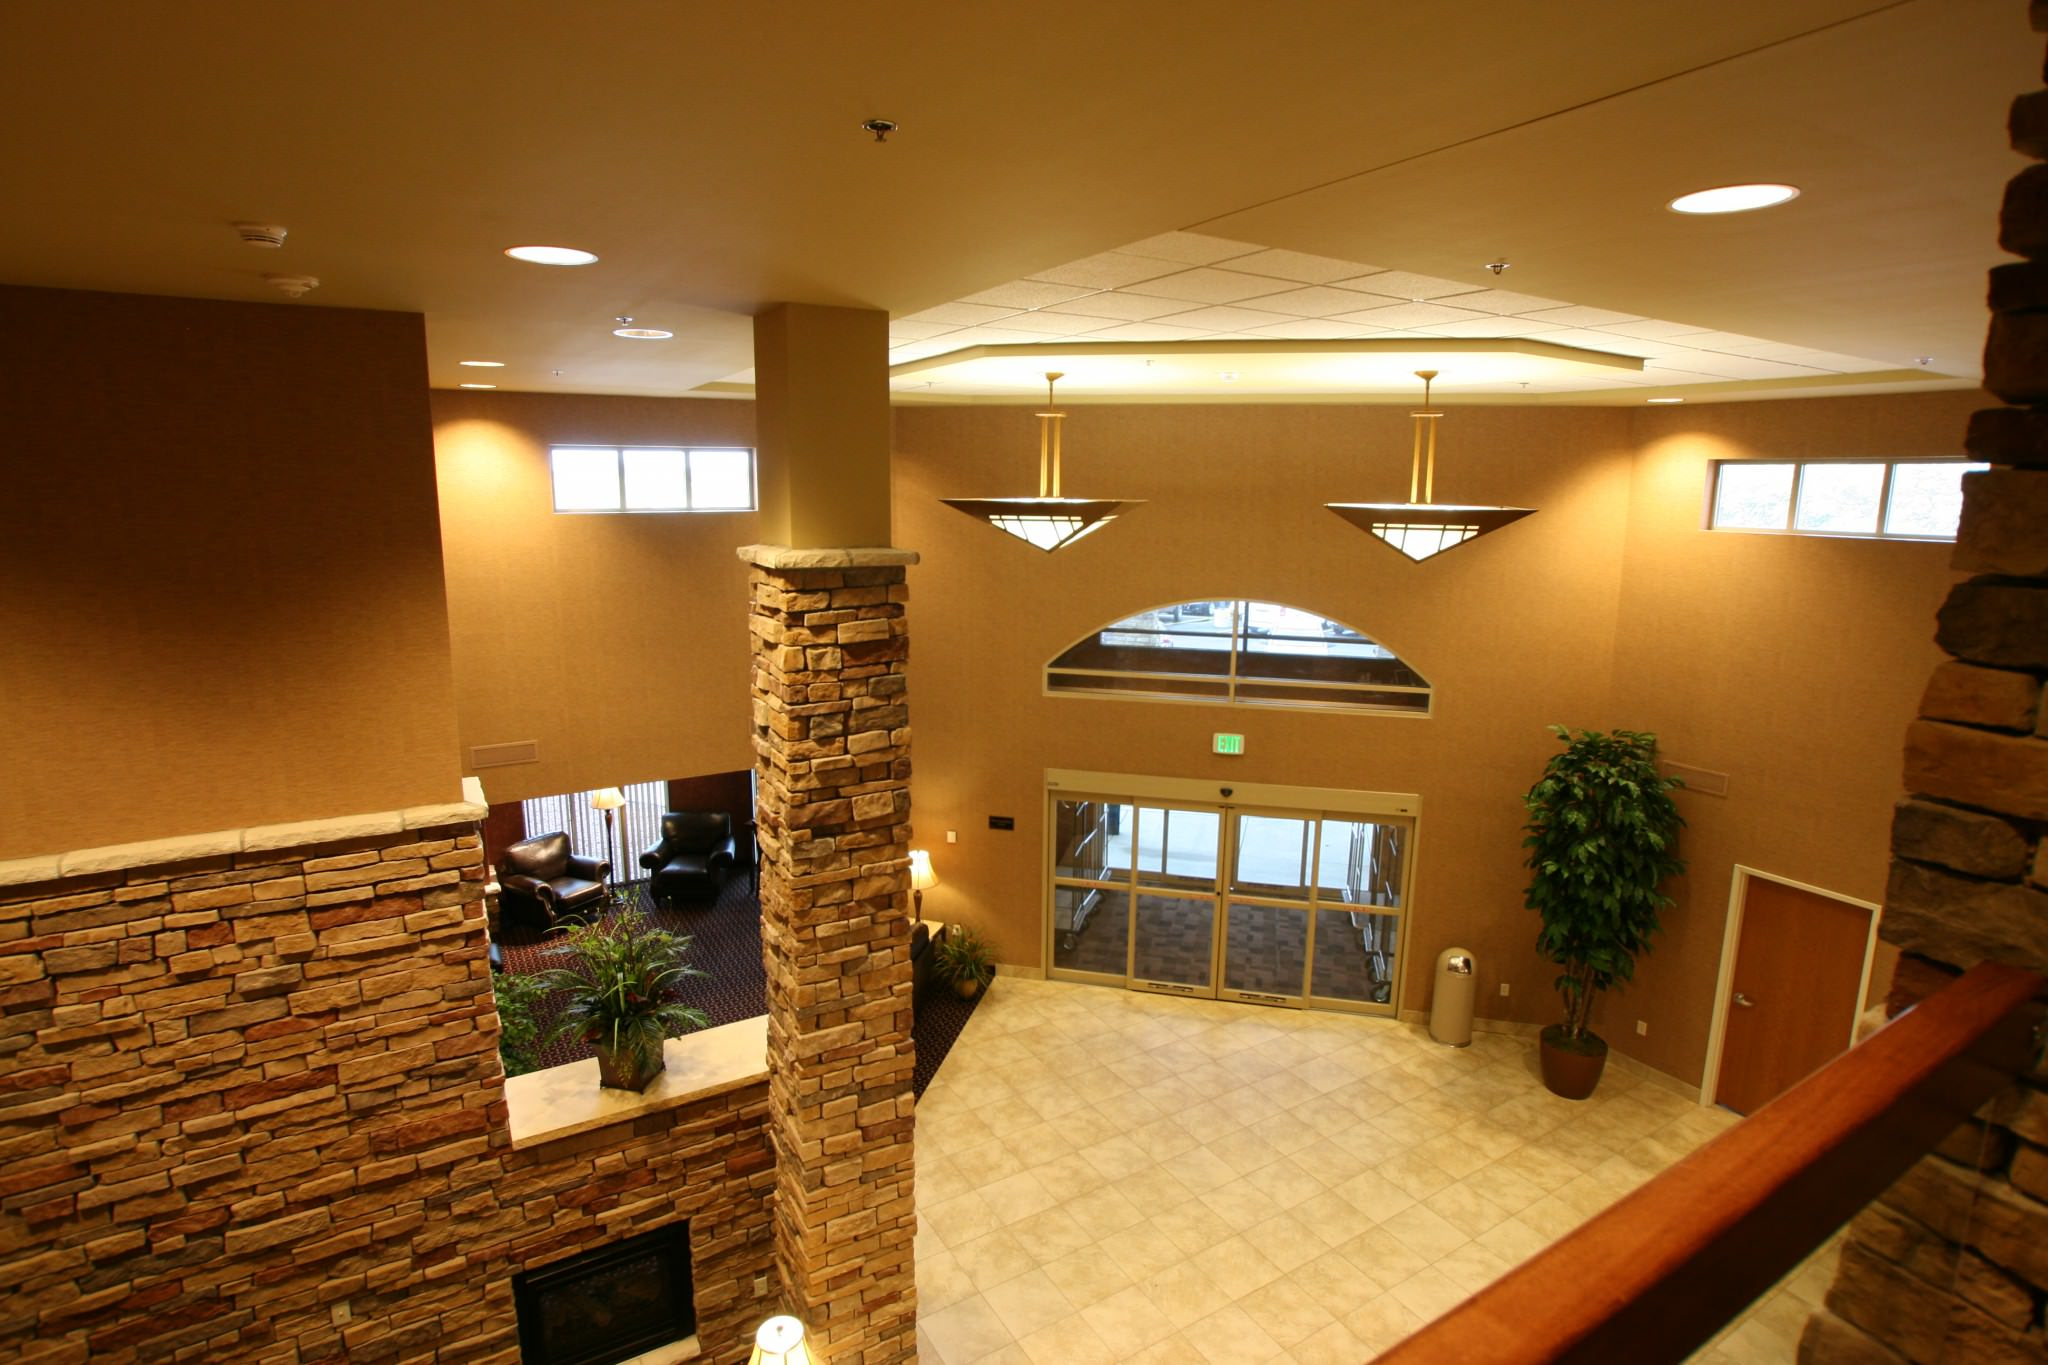 Prairies Edge Casino entrance with tall ceilings